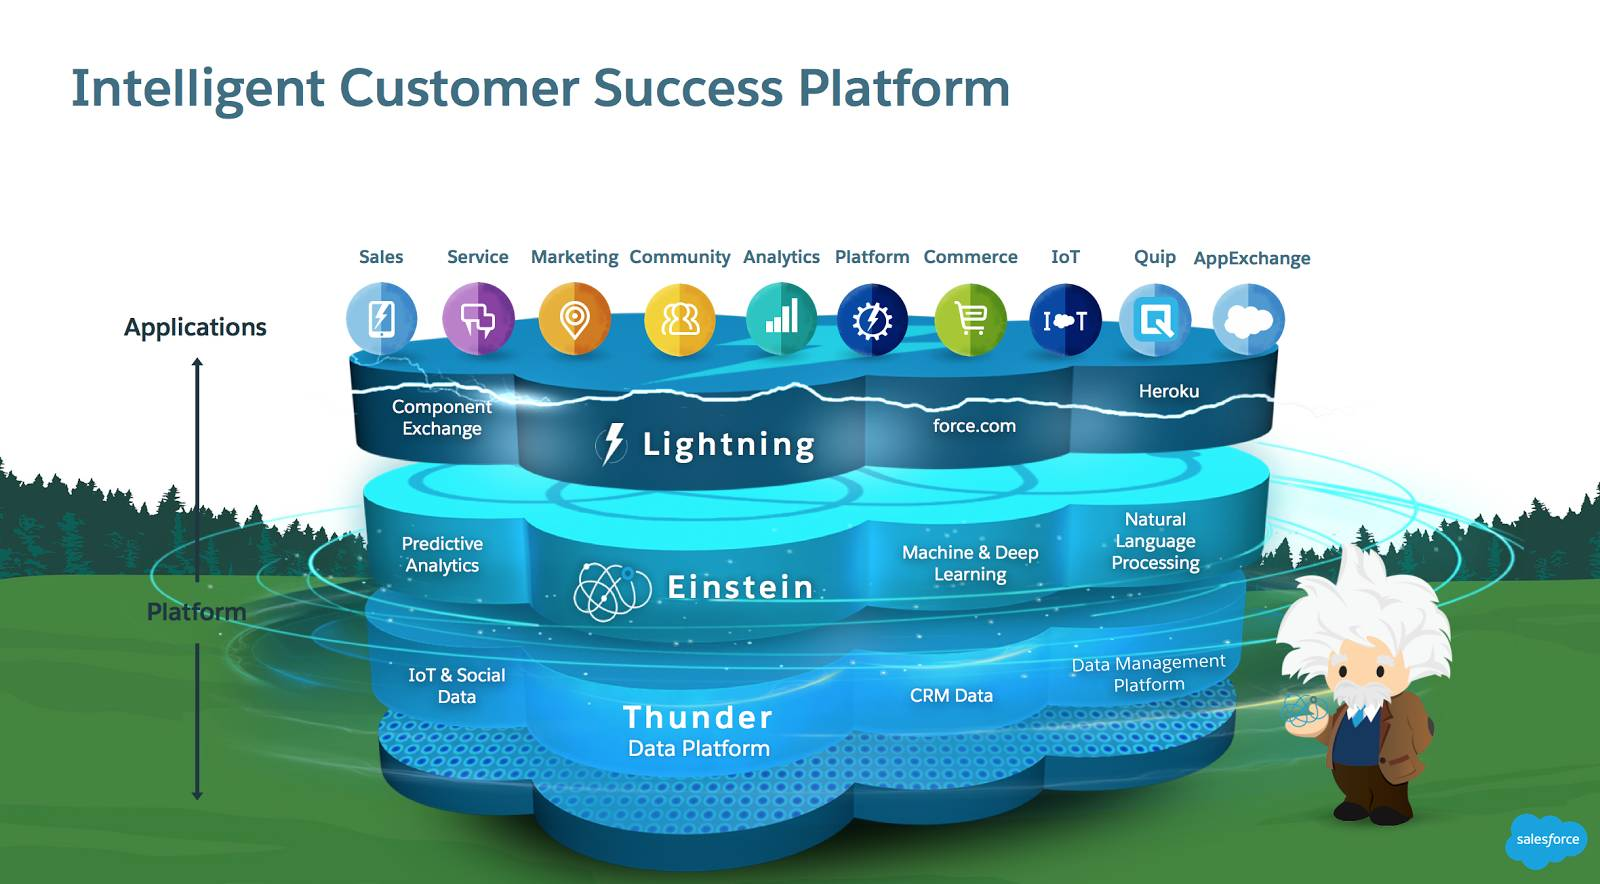 Graphic showing the data, intelligence, and application layers of the Salesforce Intelligent Customer Success Platform. The data layer includes IoT, social media, CRM, and core banking data. The intelligence layer includes analytics, machine and deep learning, and natural language processing. The applications layer includes Sales, Service, Marketing, Community, Analytics, Platform, Commerce, IoT, Quip, AppExchange.